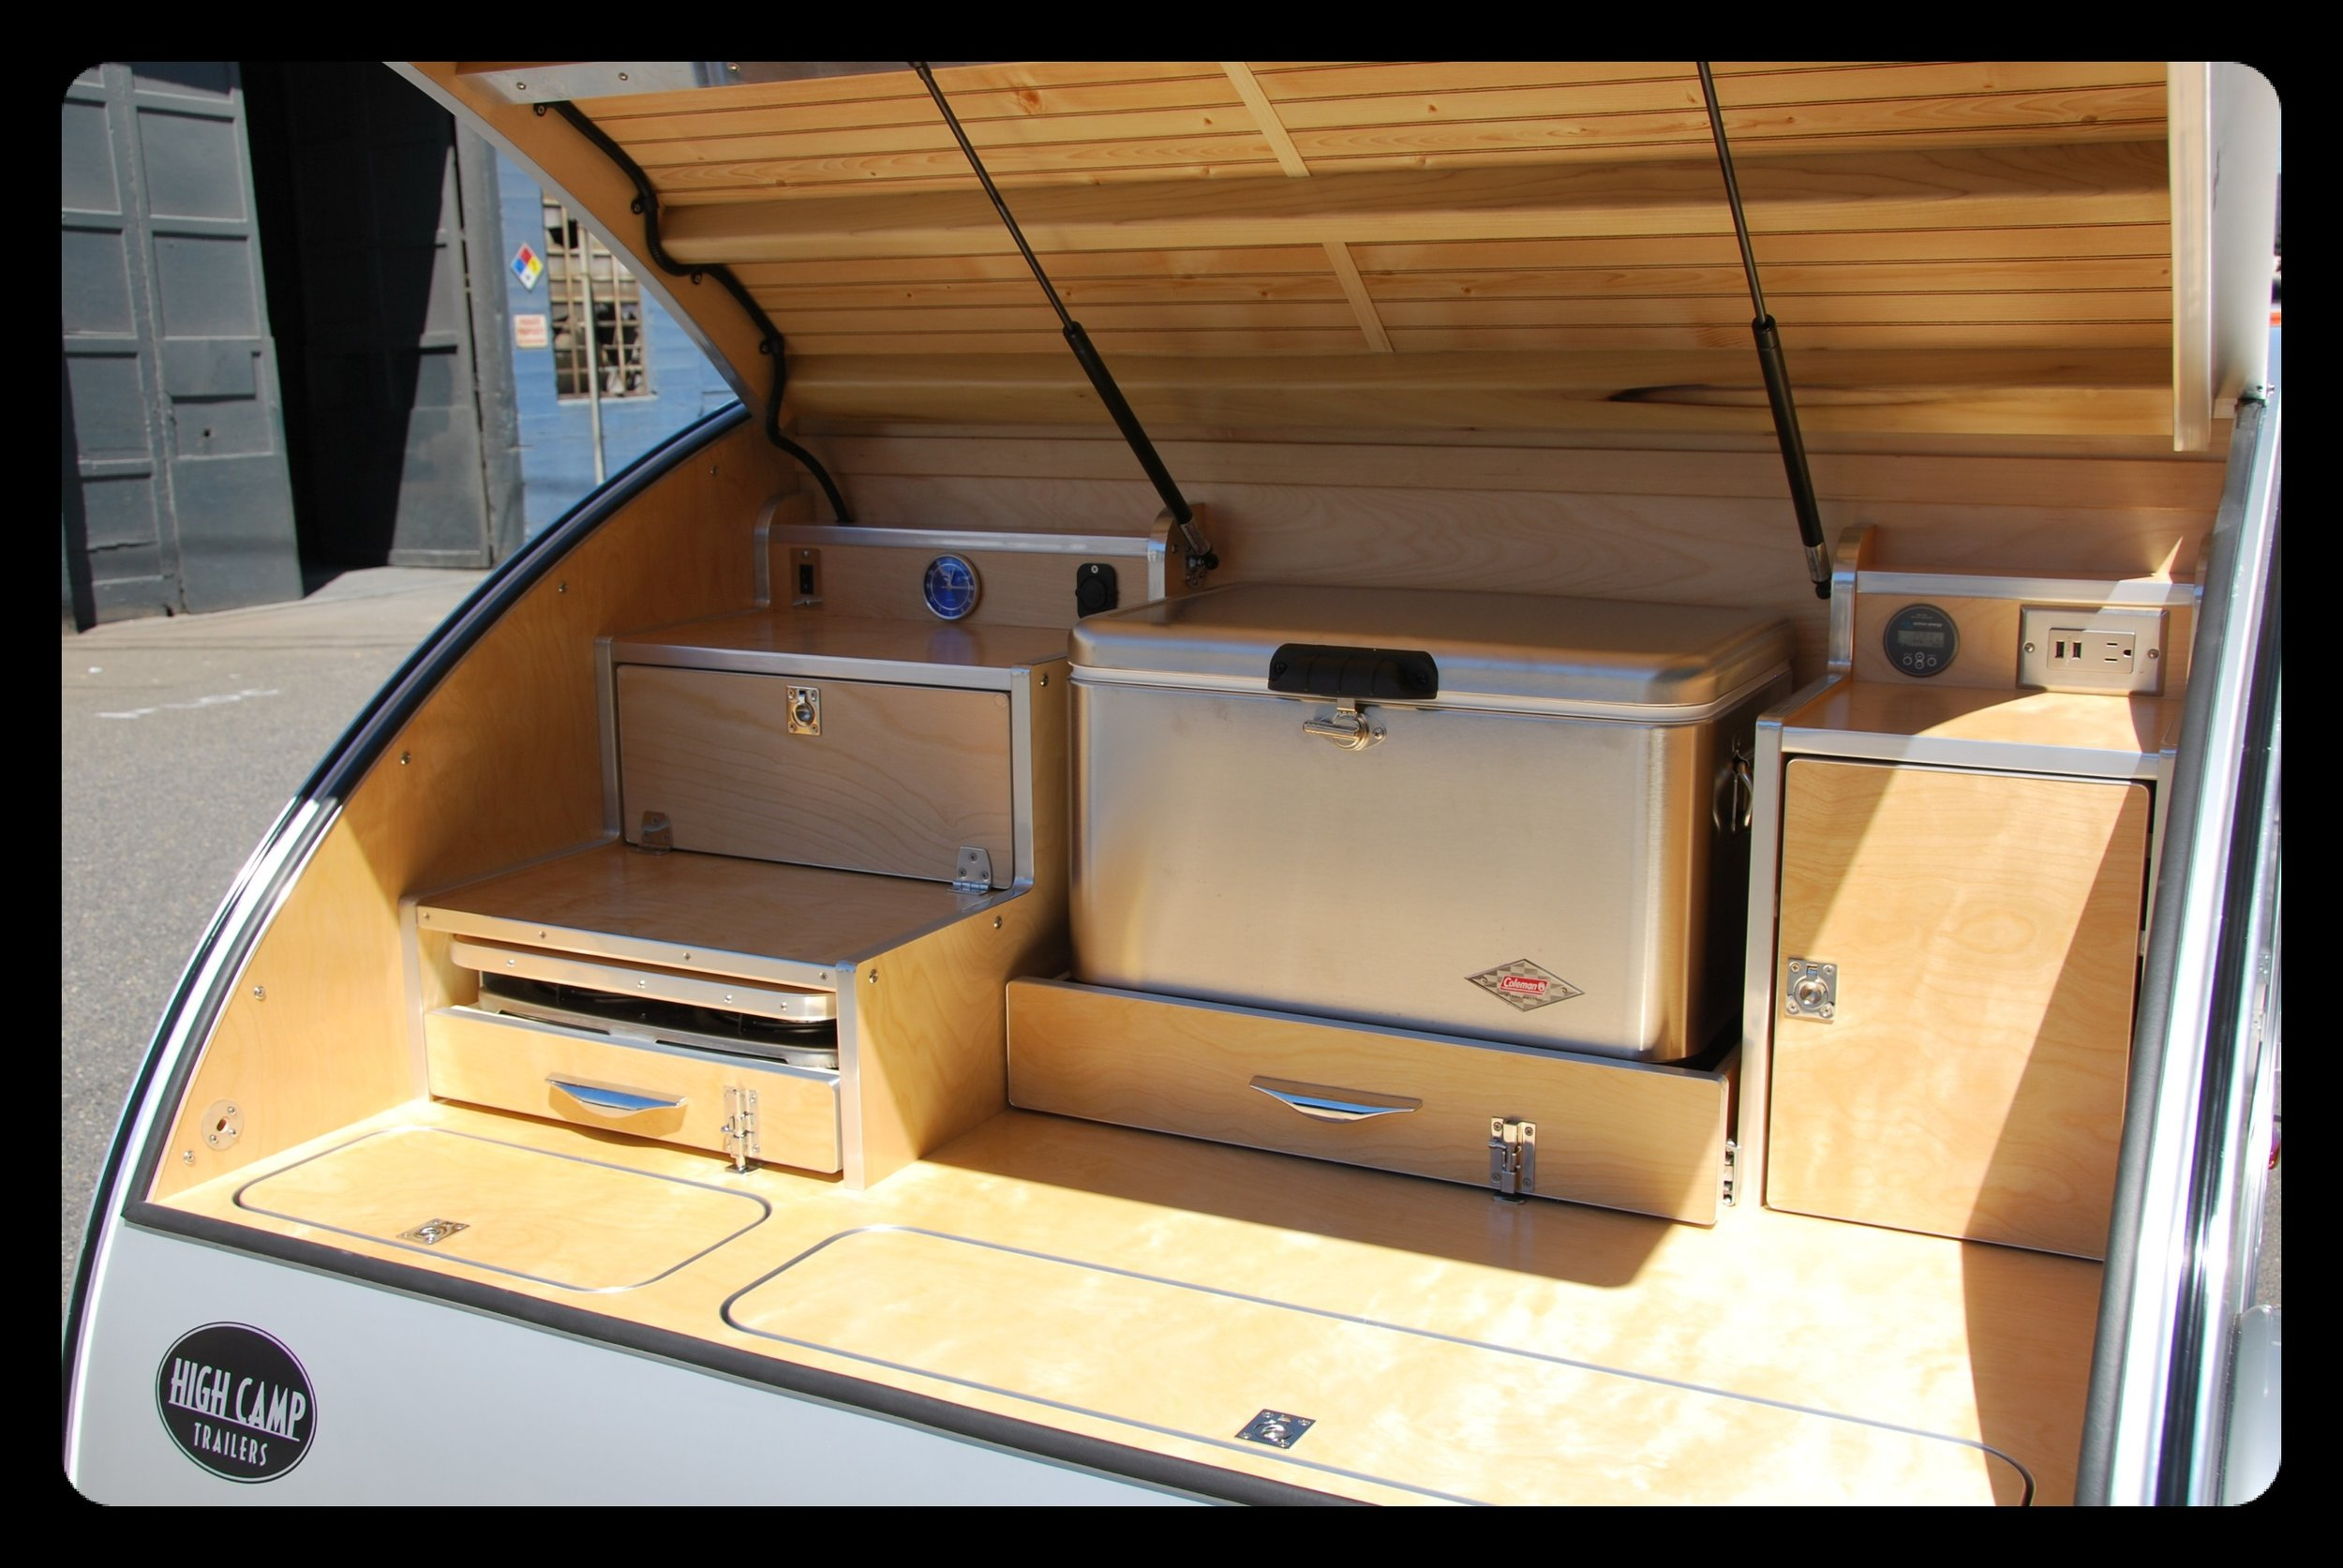 Trailer Galley Images High Camp Trailers Compact Camping Teardrop Trailers